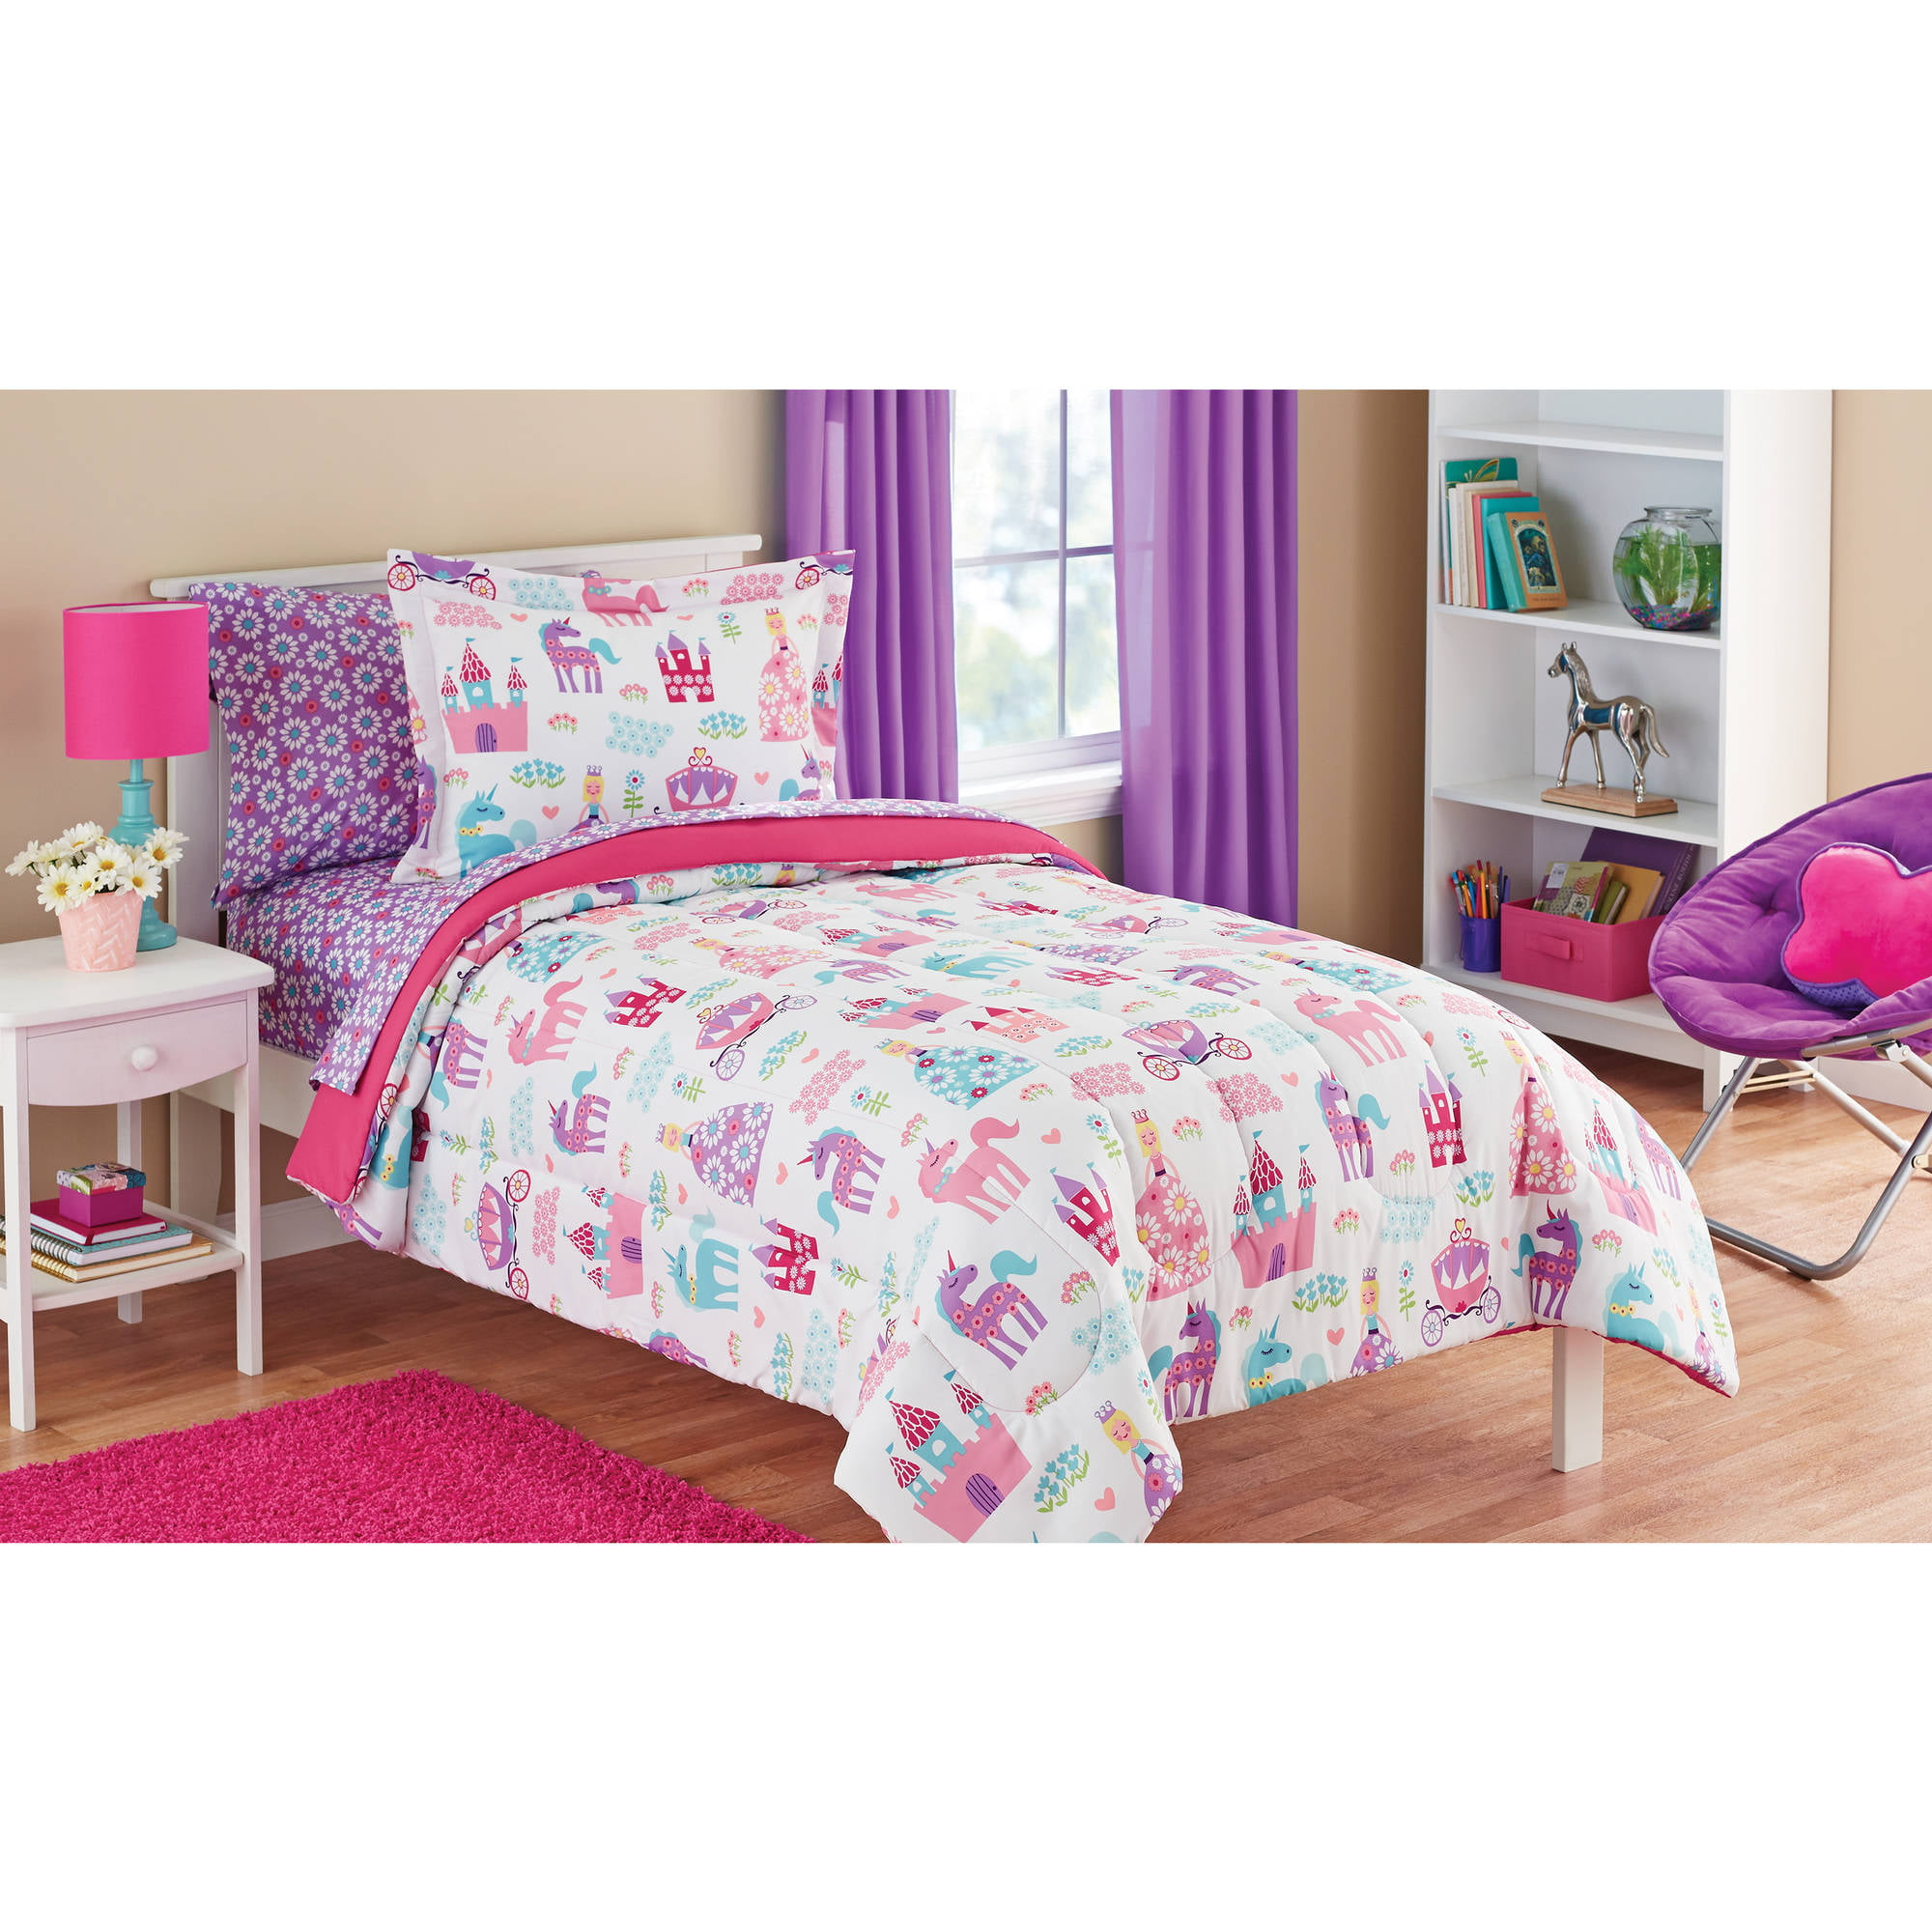 Mainstays Kids Robots Bed In A Bag Coordinating Bedding Set   Walmart.com